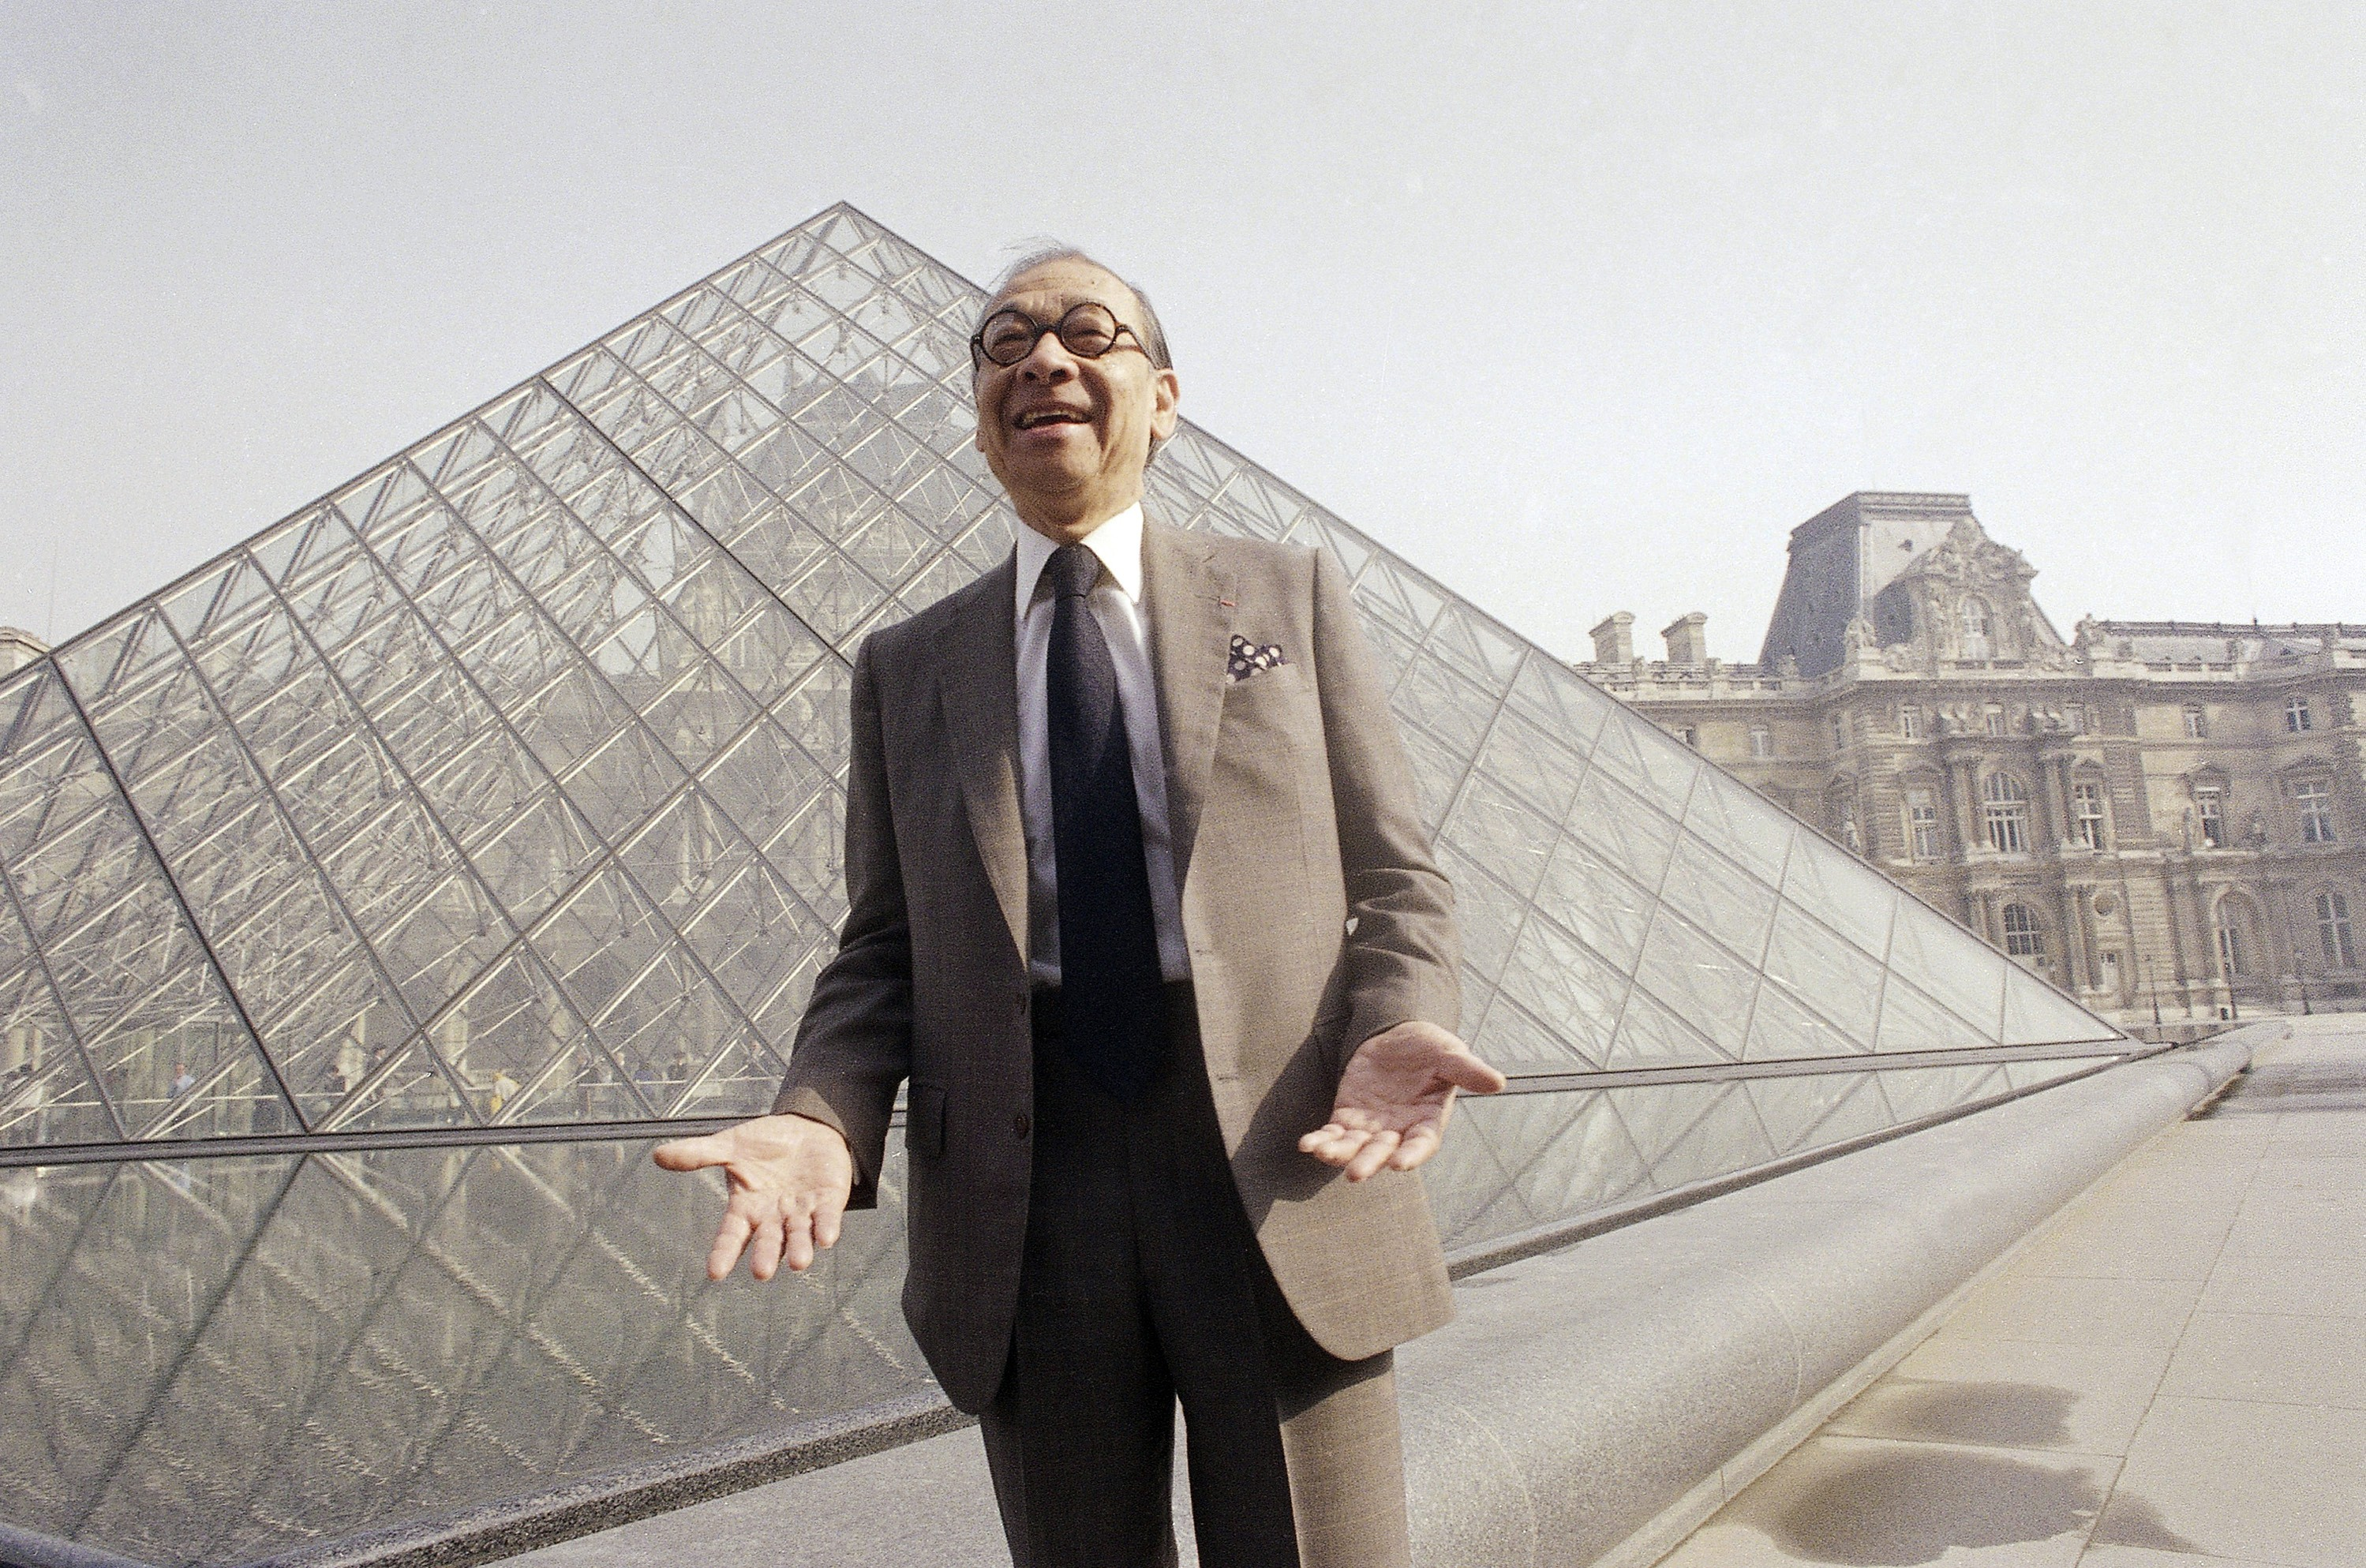 b795c21e4a05dc Remembering I.M. Pei: 5 iconic buildings designed by legendary Chinese- American architect you must visit